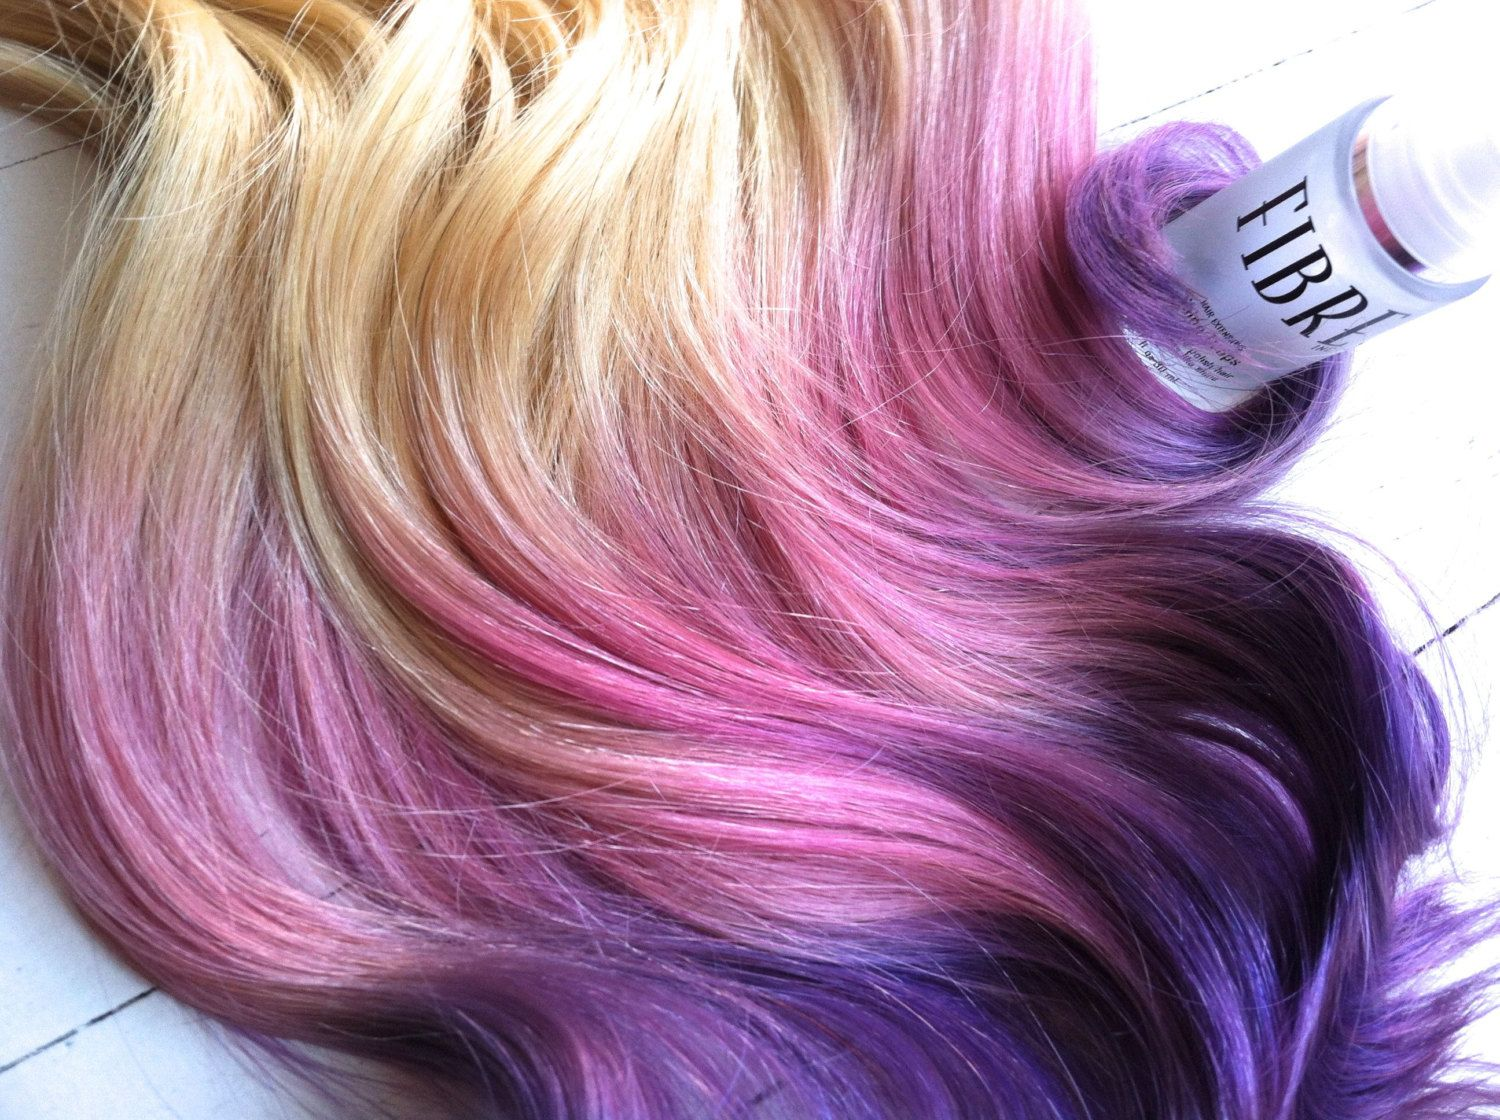 Blonde Ombre Blonde Hair Extensions Dipped In Purple Haze And Pink Lauren Conrad Dip Dye 7 Pieces Stu Hair Color Purple Purple Ombre Hair Ombre Hair Color